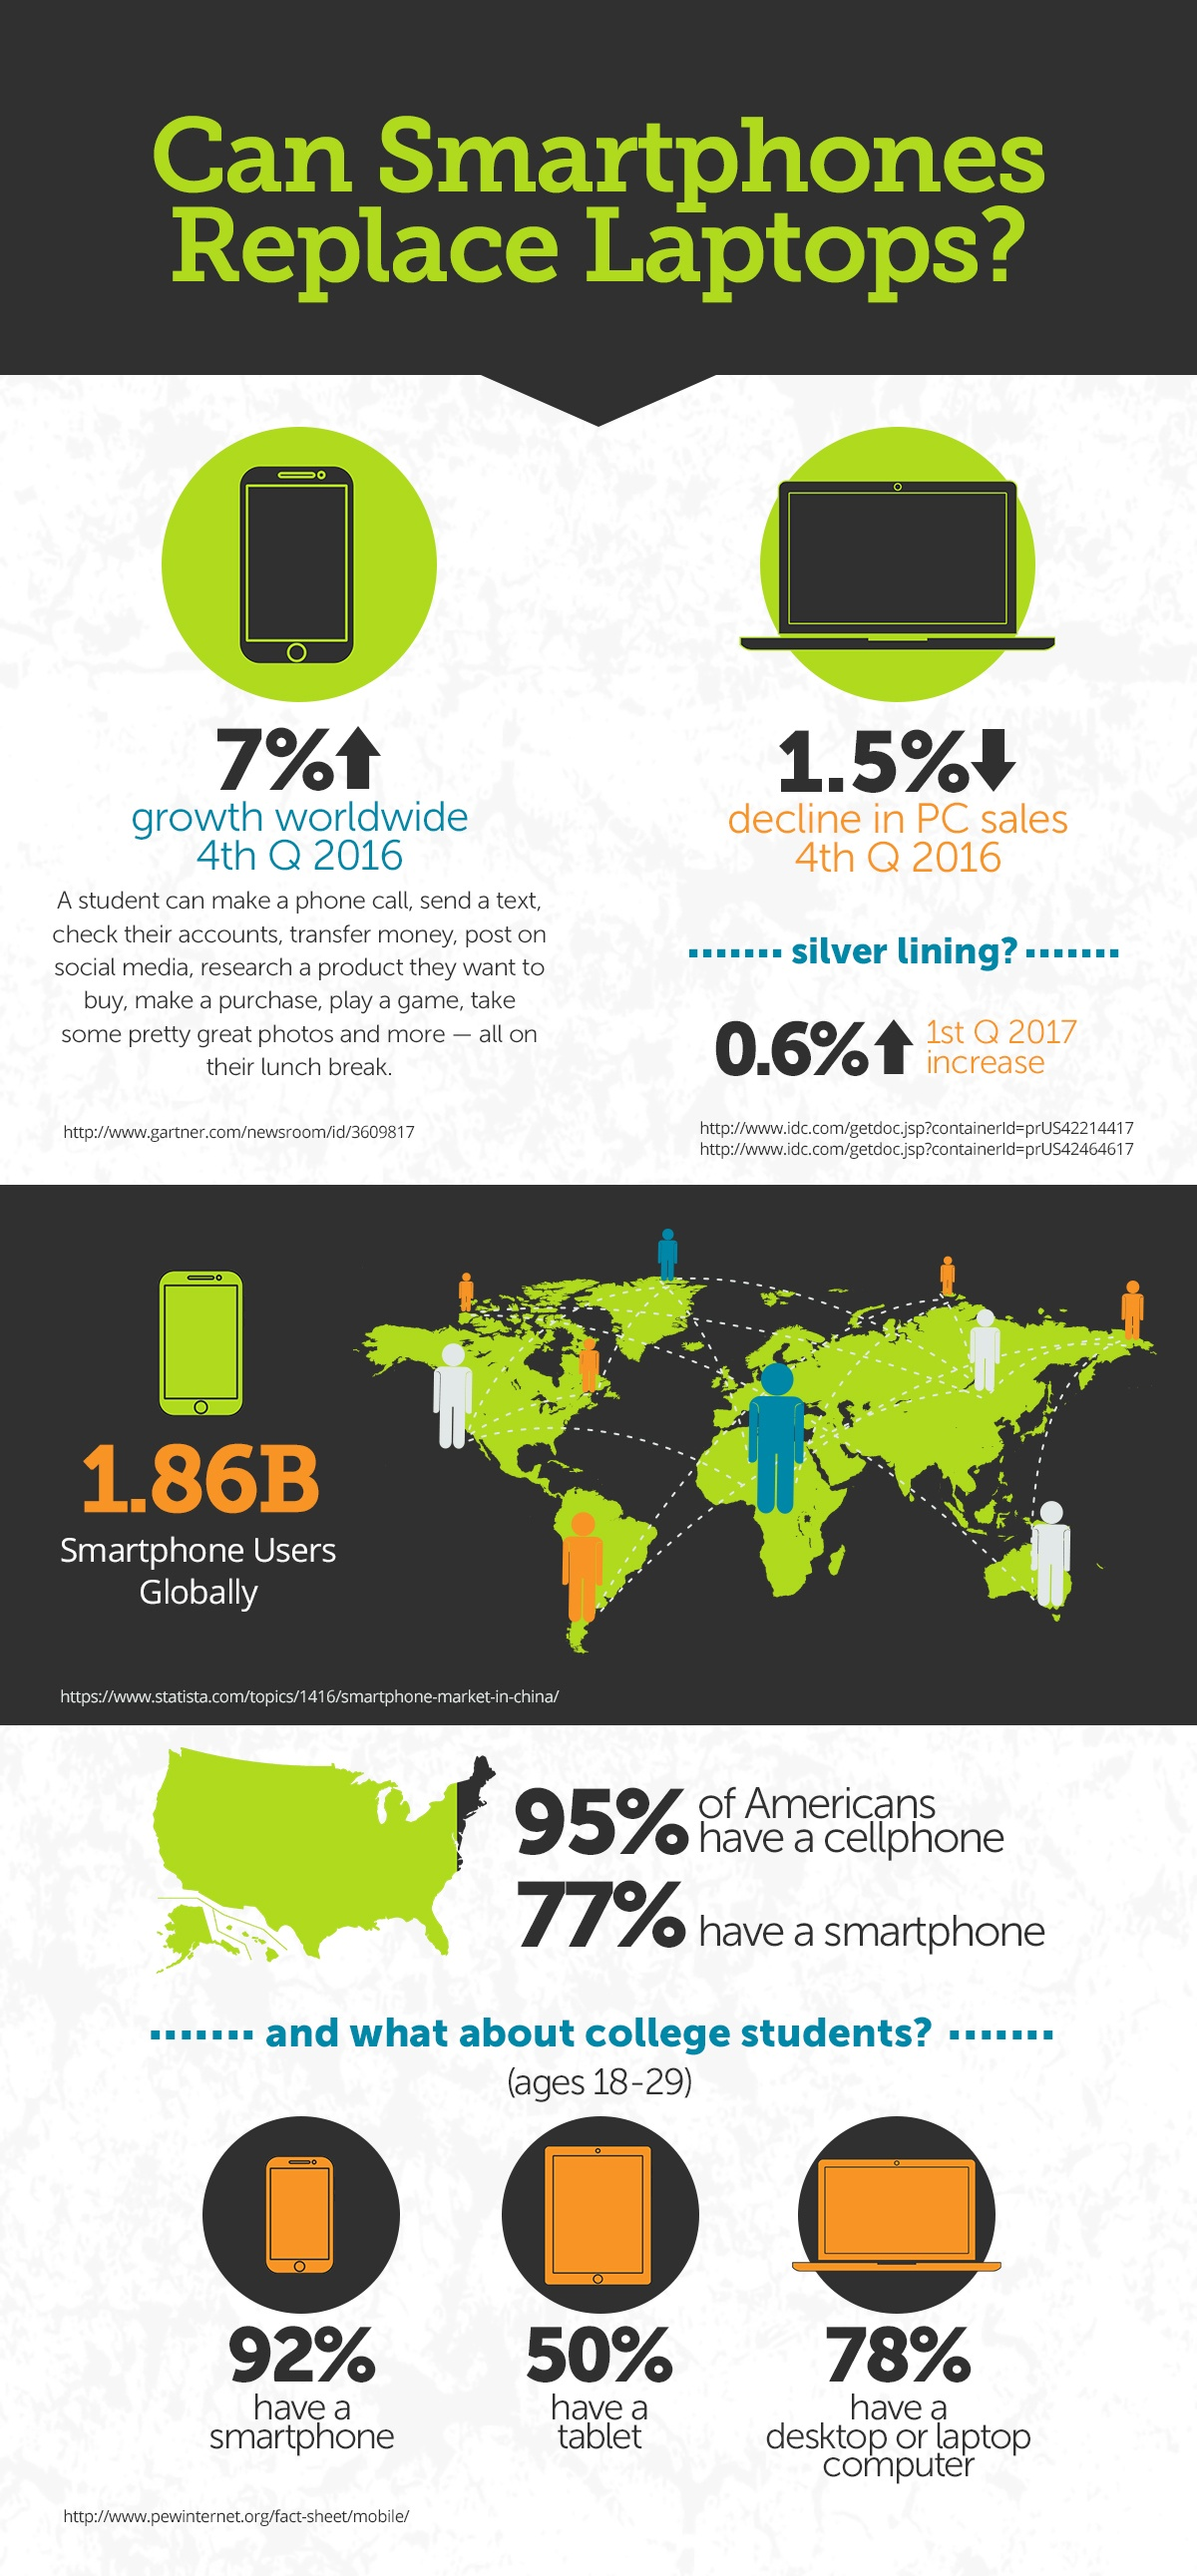 Can-Smartphones-Replace-Laptops-Infographic-FO.jpg